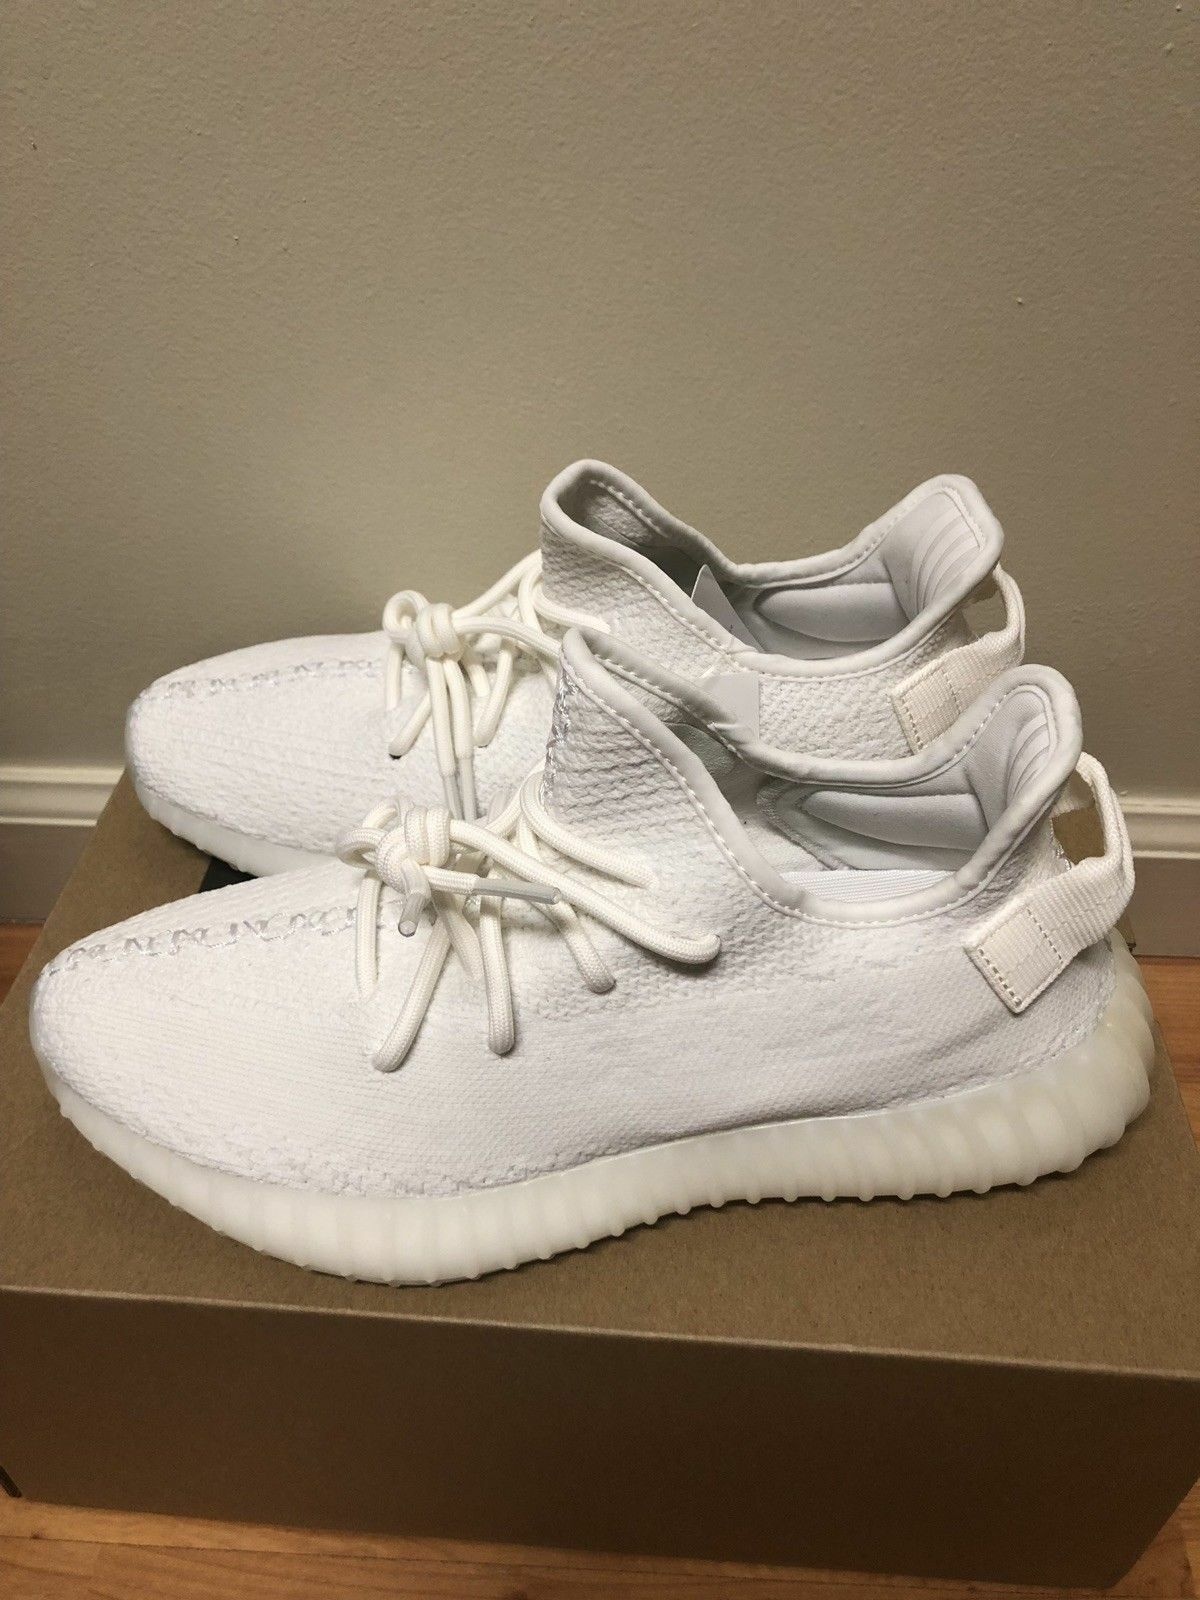 New Authentic genuine Adidas Yeezy Boost V2 Triple White CP9366 Size 9, 9.5, 10